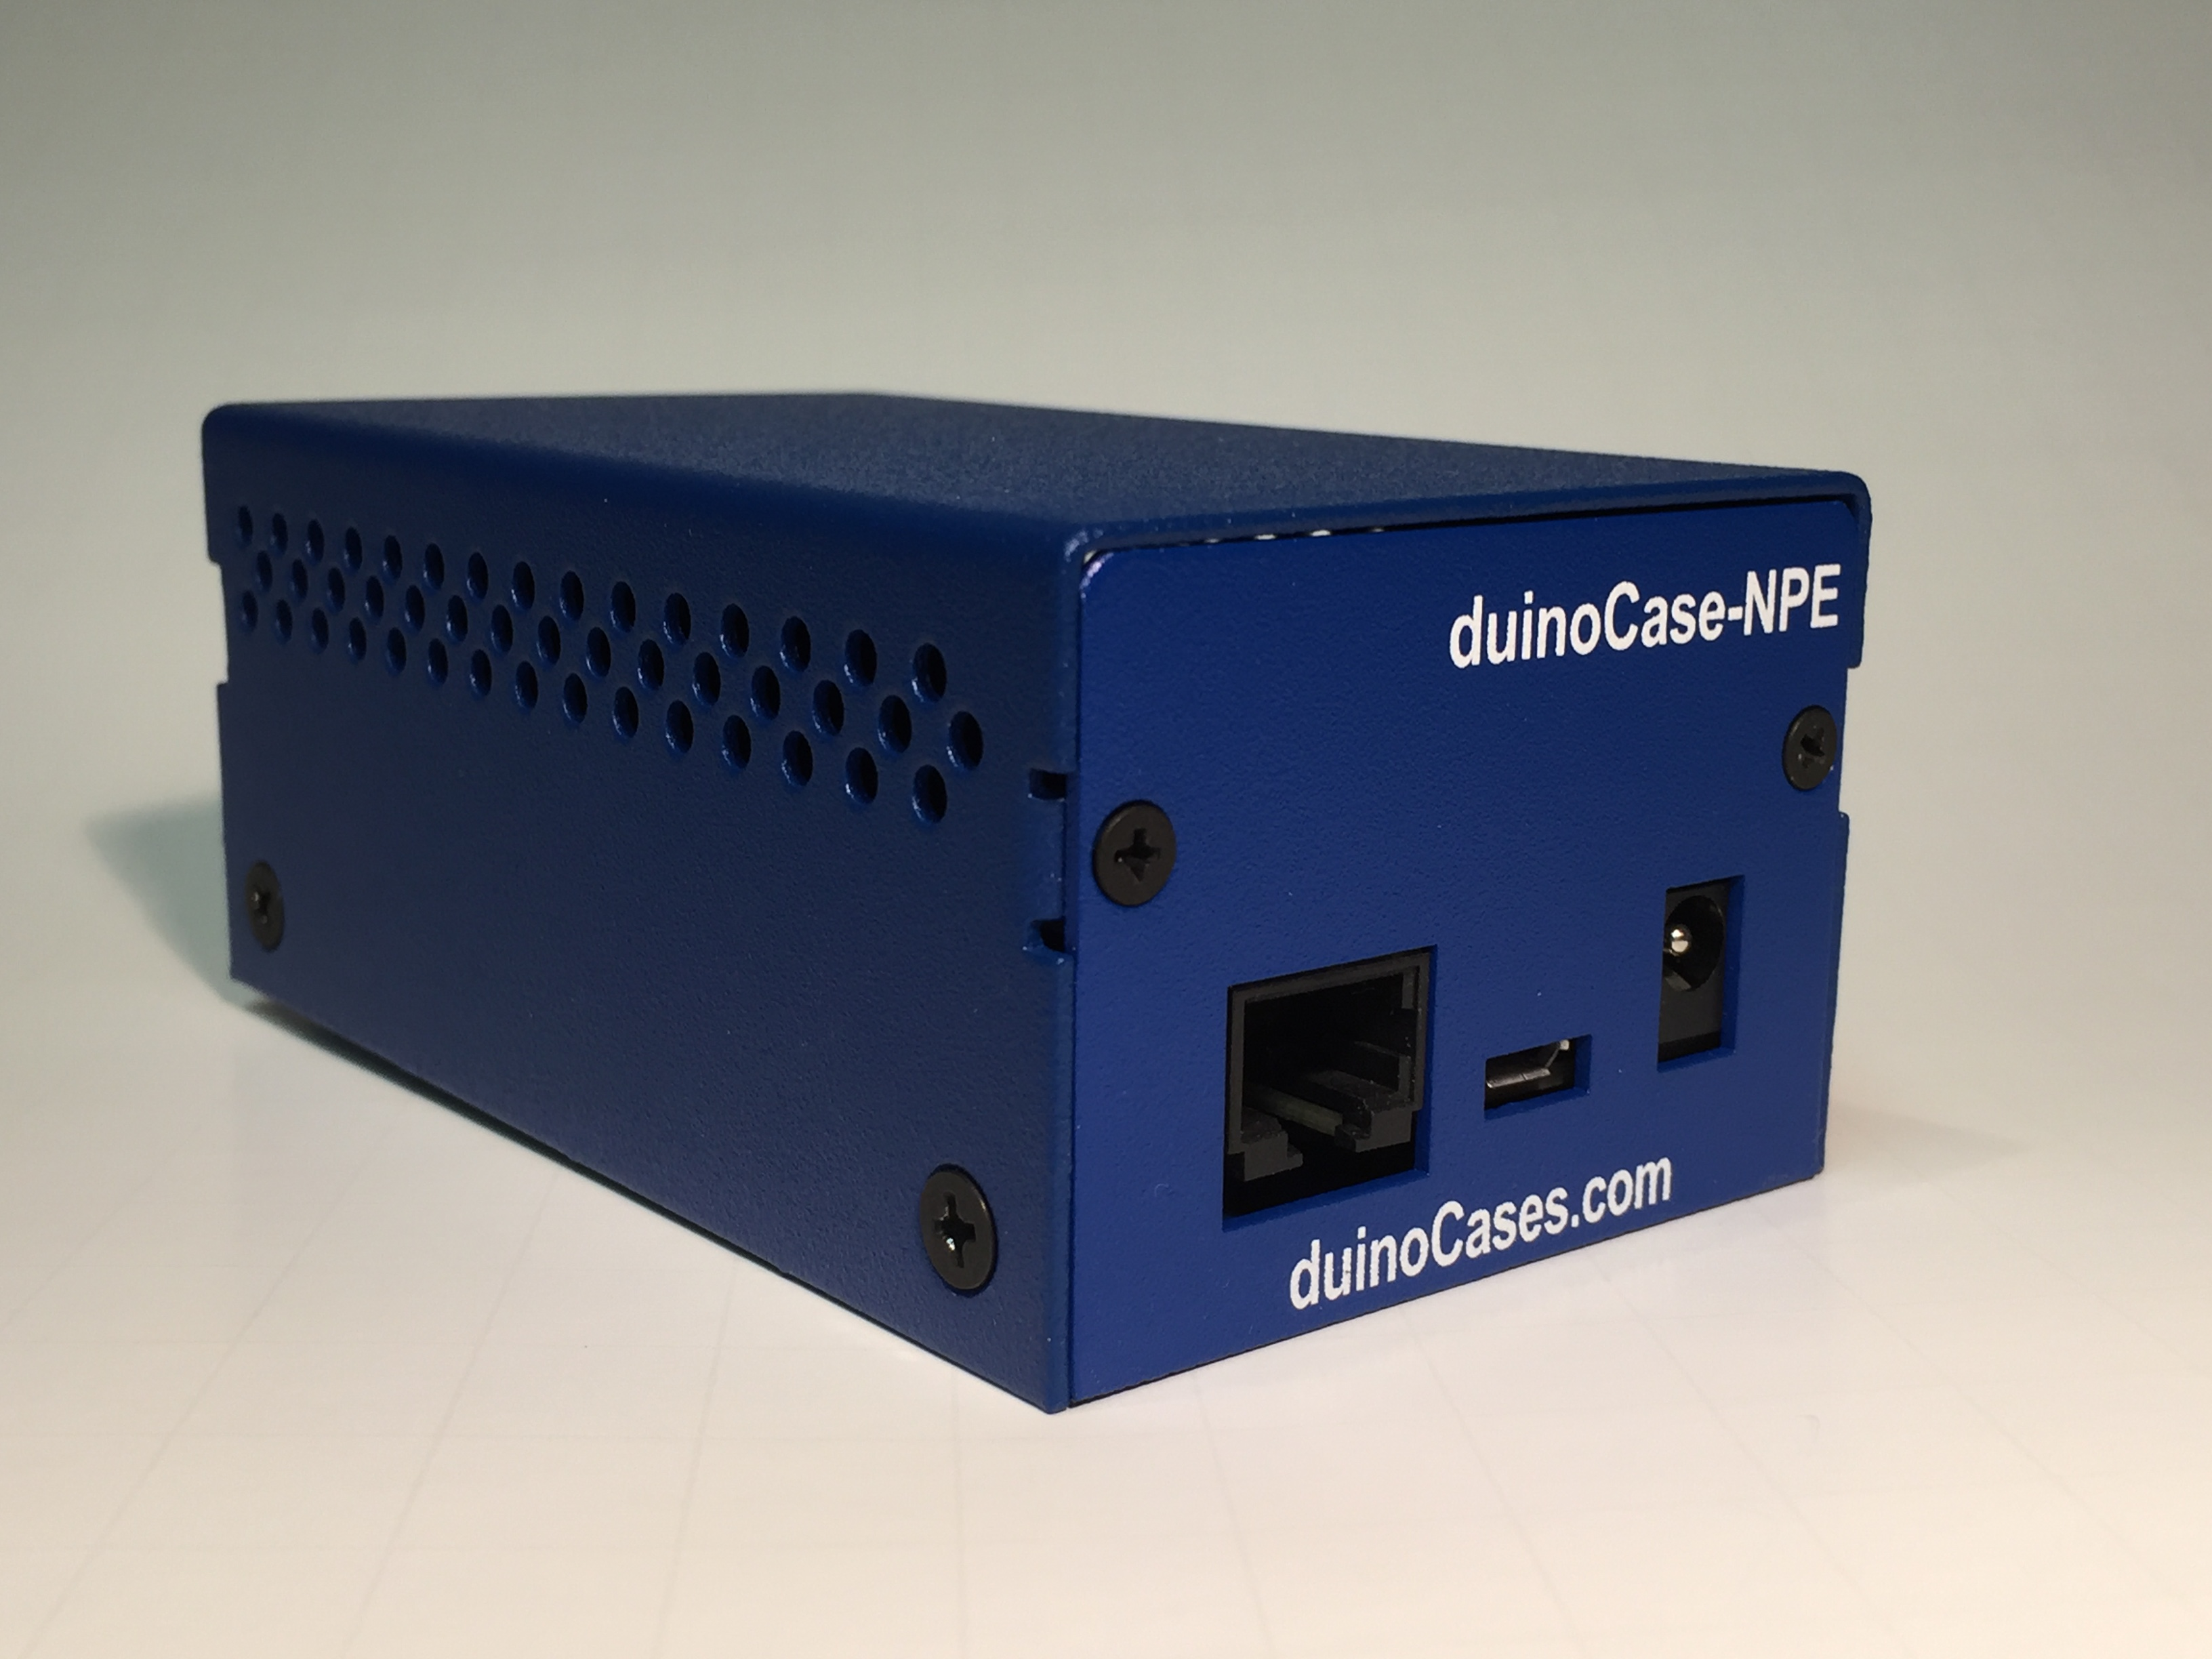 duinocase-npe-front-angle